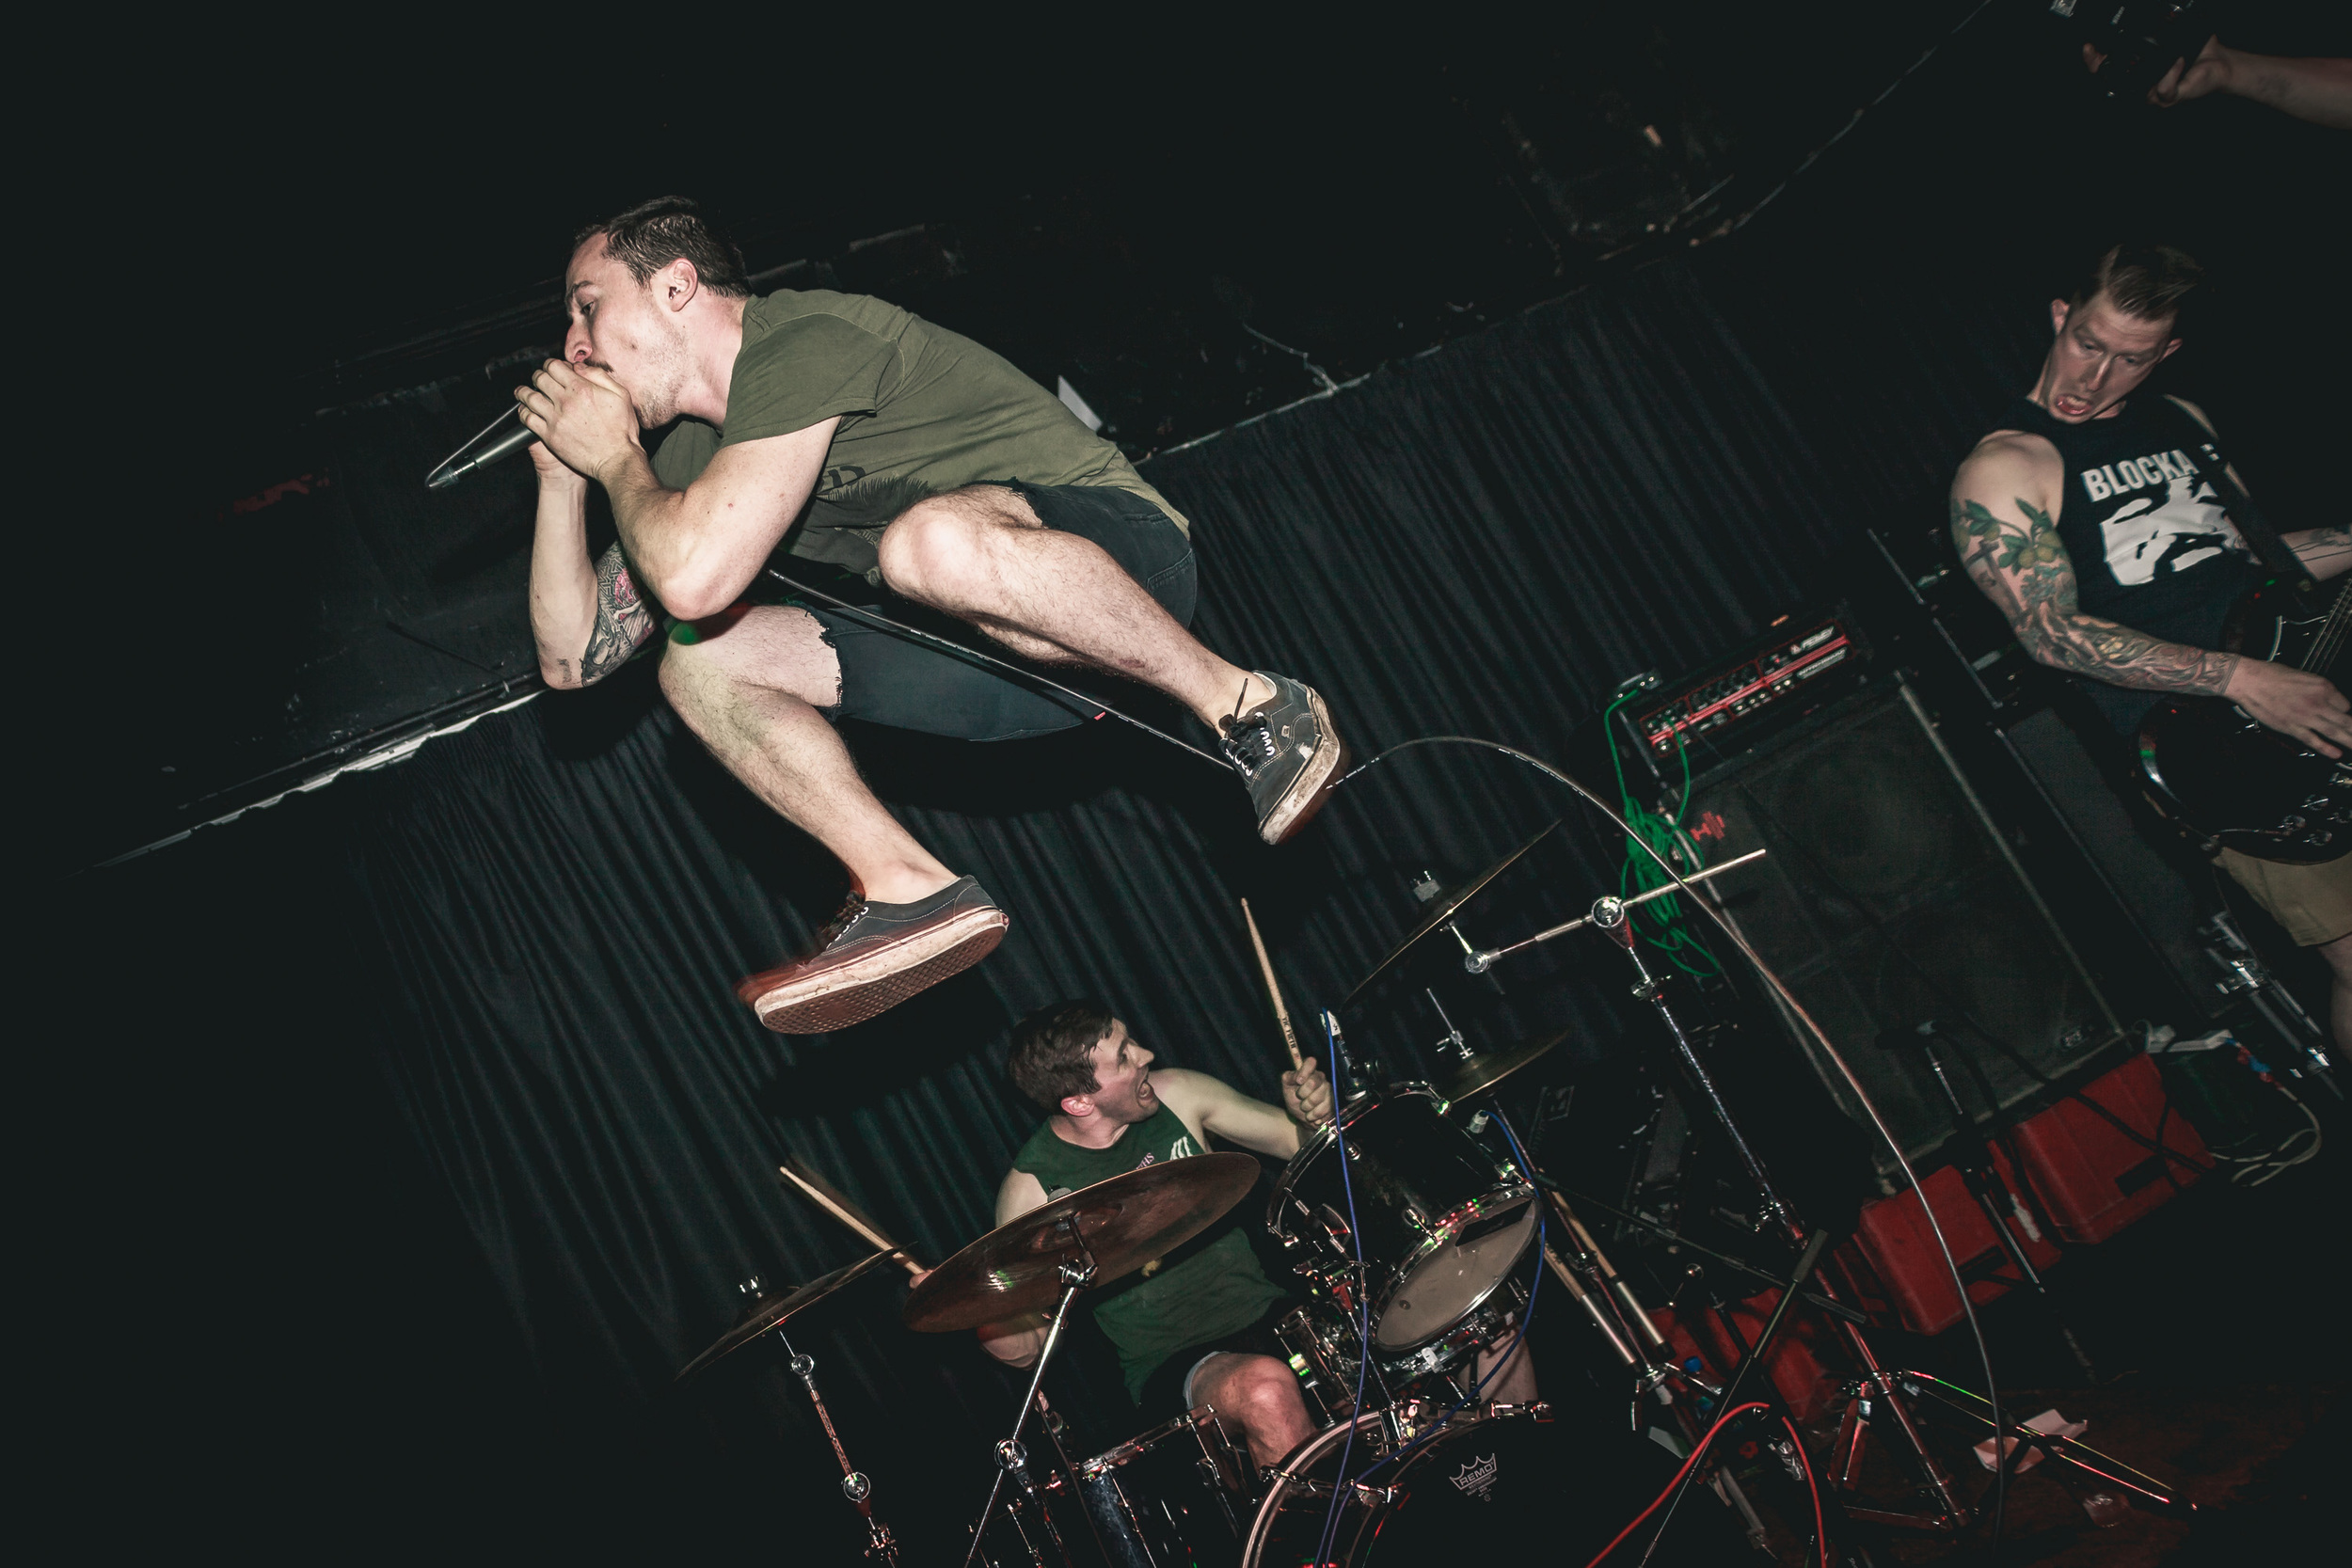 Vocalist Avi Kulawy leaps into the air while performing with Magrudergrind in London